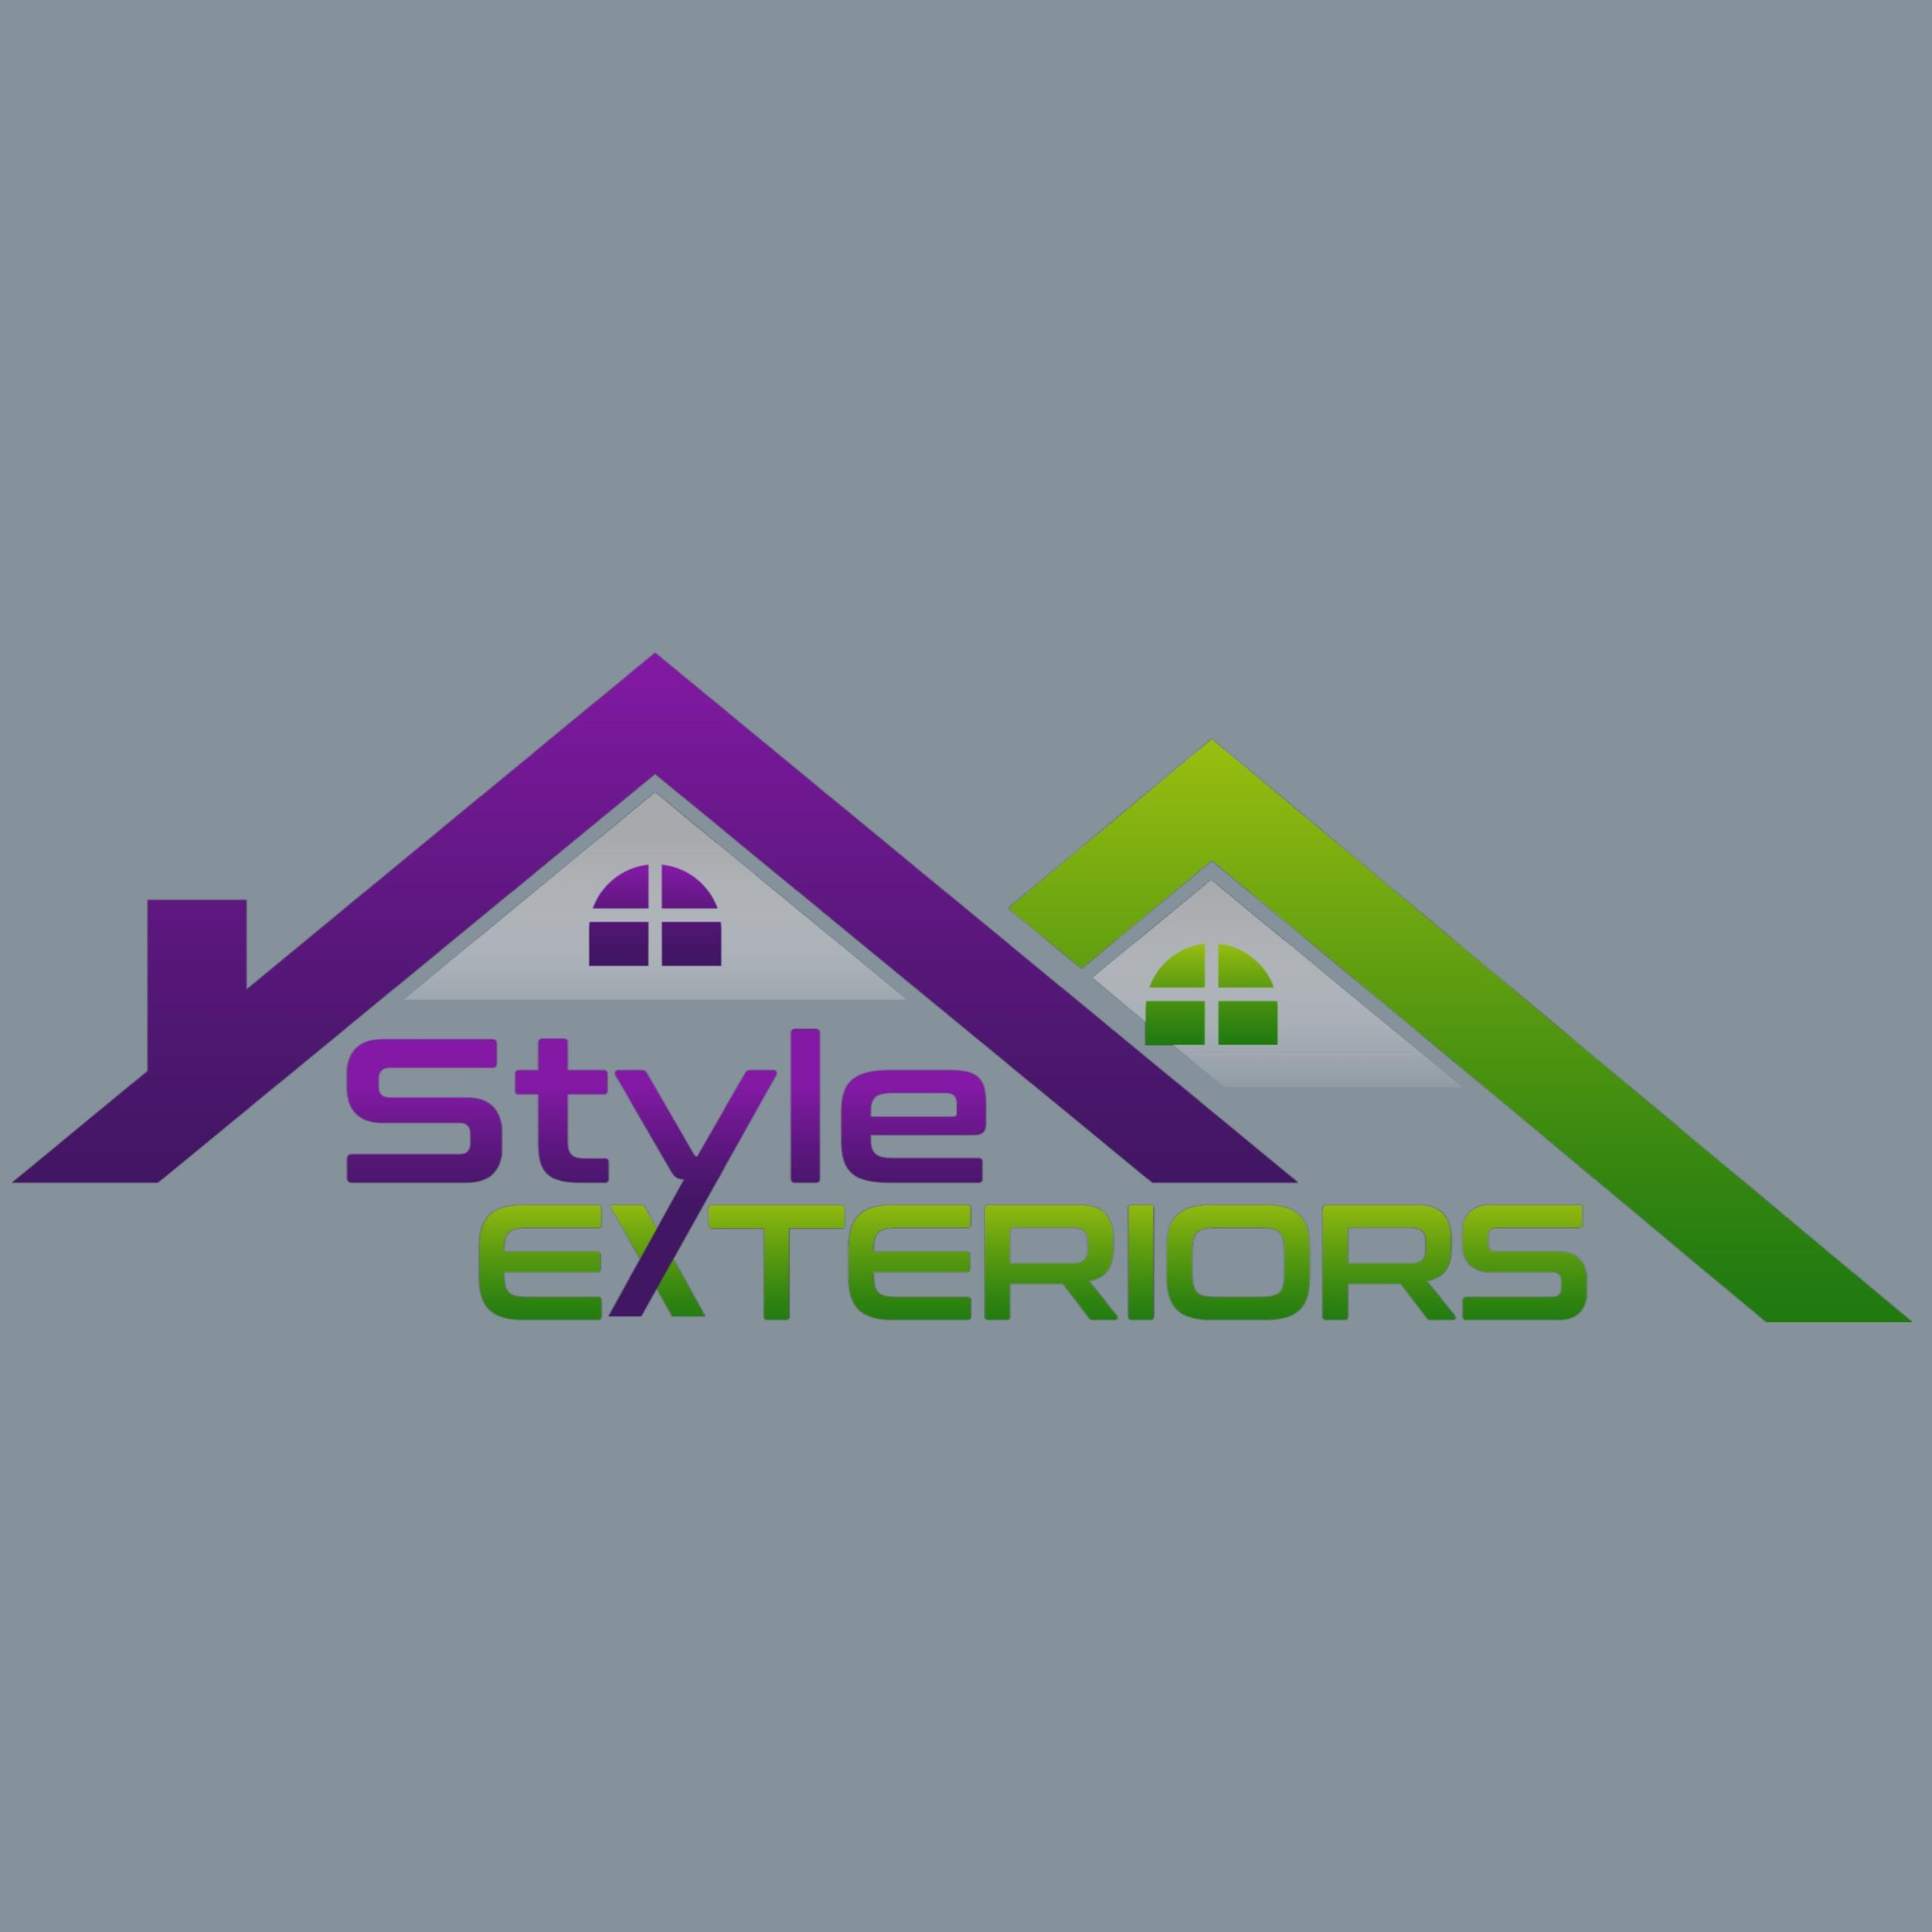 Style Exteriors by Corley - Oak Lawn, IL - General Contractors